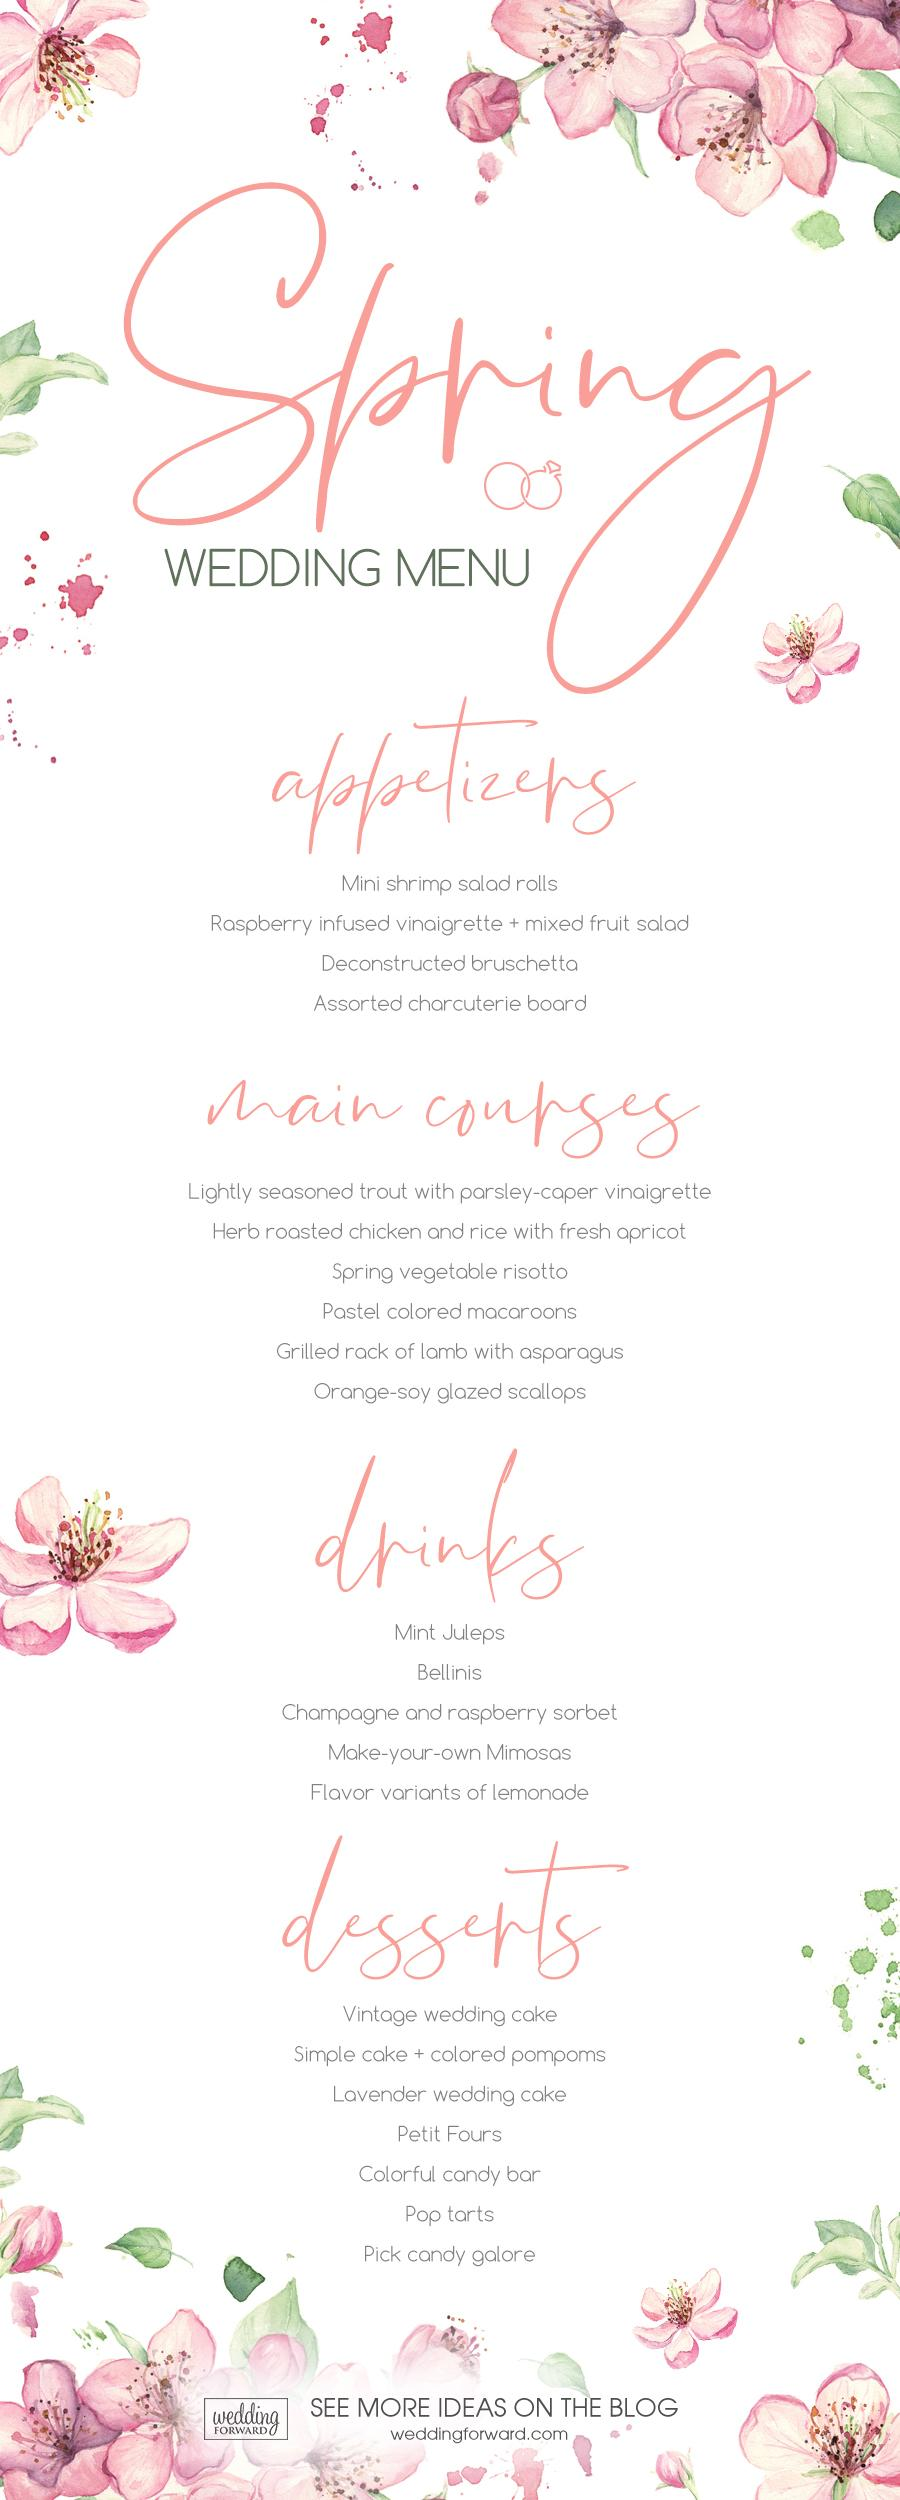 Spring wedding menu - wedding menu ideas